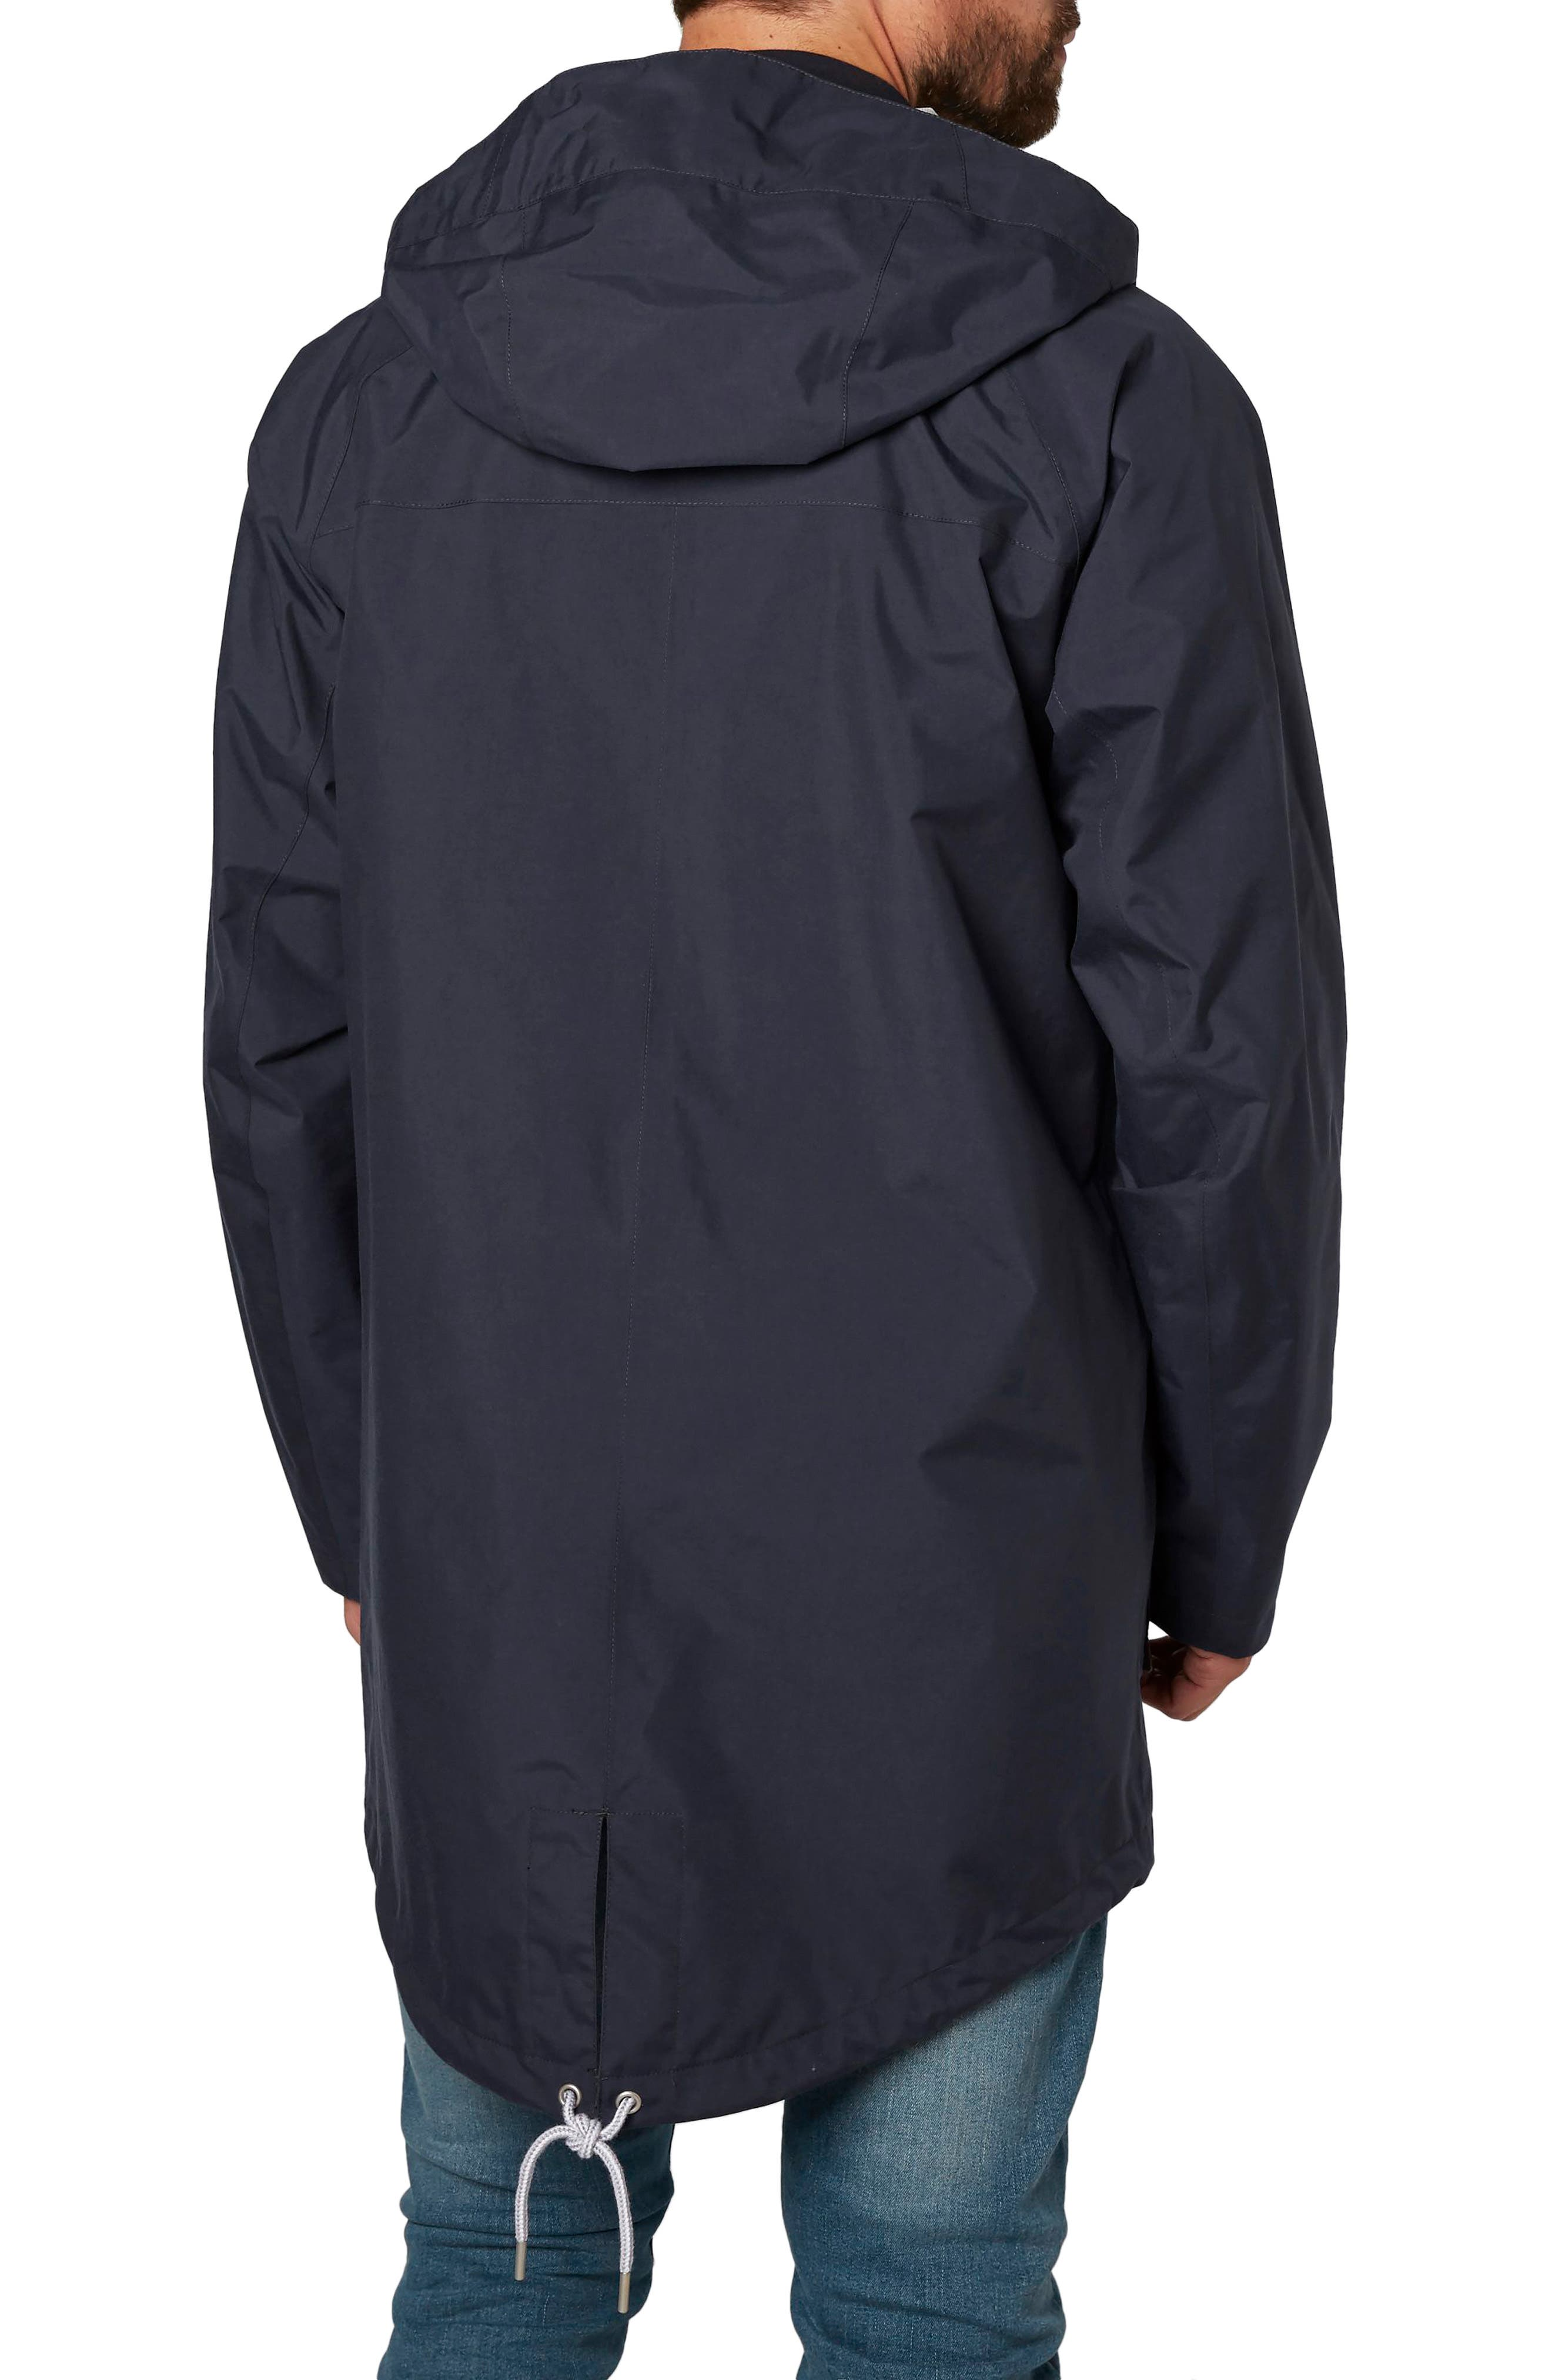 Elements Hooded Rain Jacket,                             Alternate thumbnail 2, color,